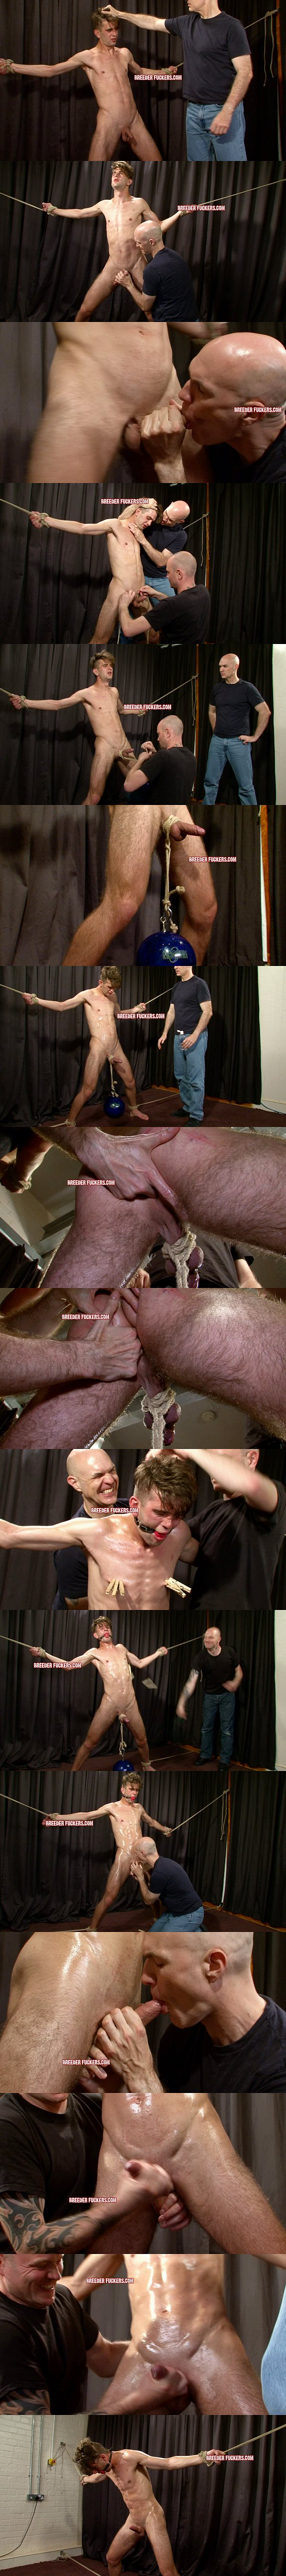 British straight jock Ross gets wanked, sucked, cbt, ass fingered, nipples pegged, gagged and jerked off at Breederfuckers 02